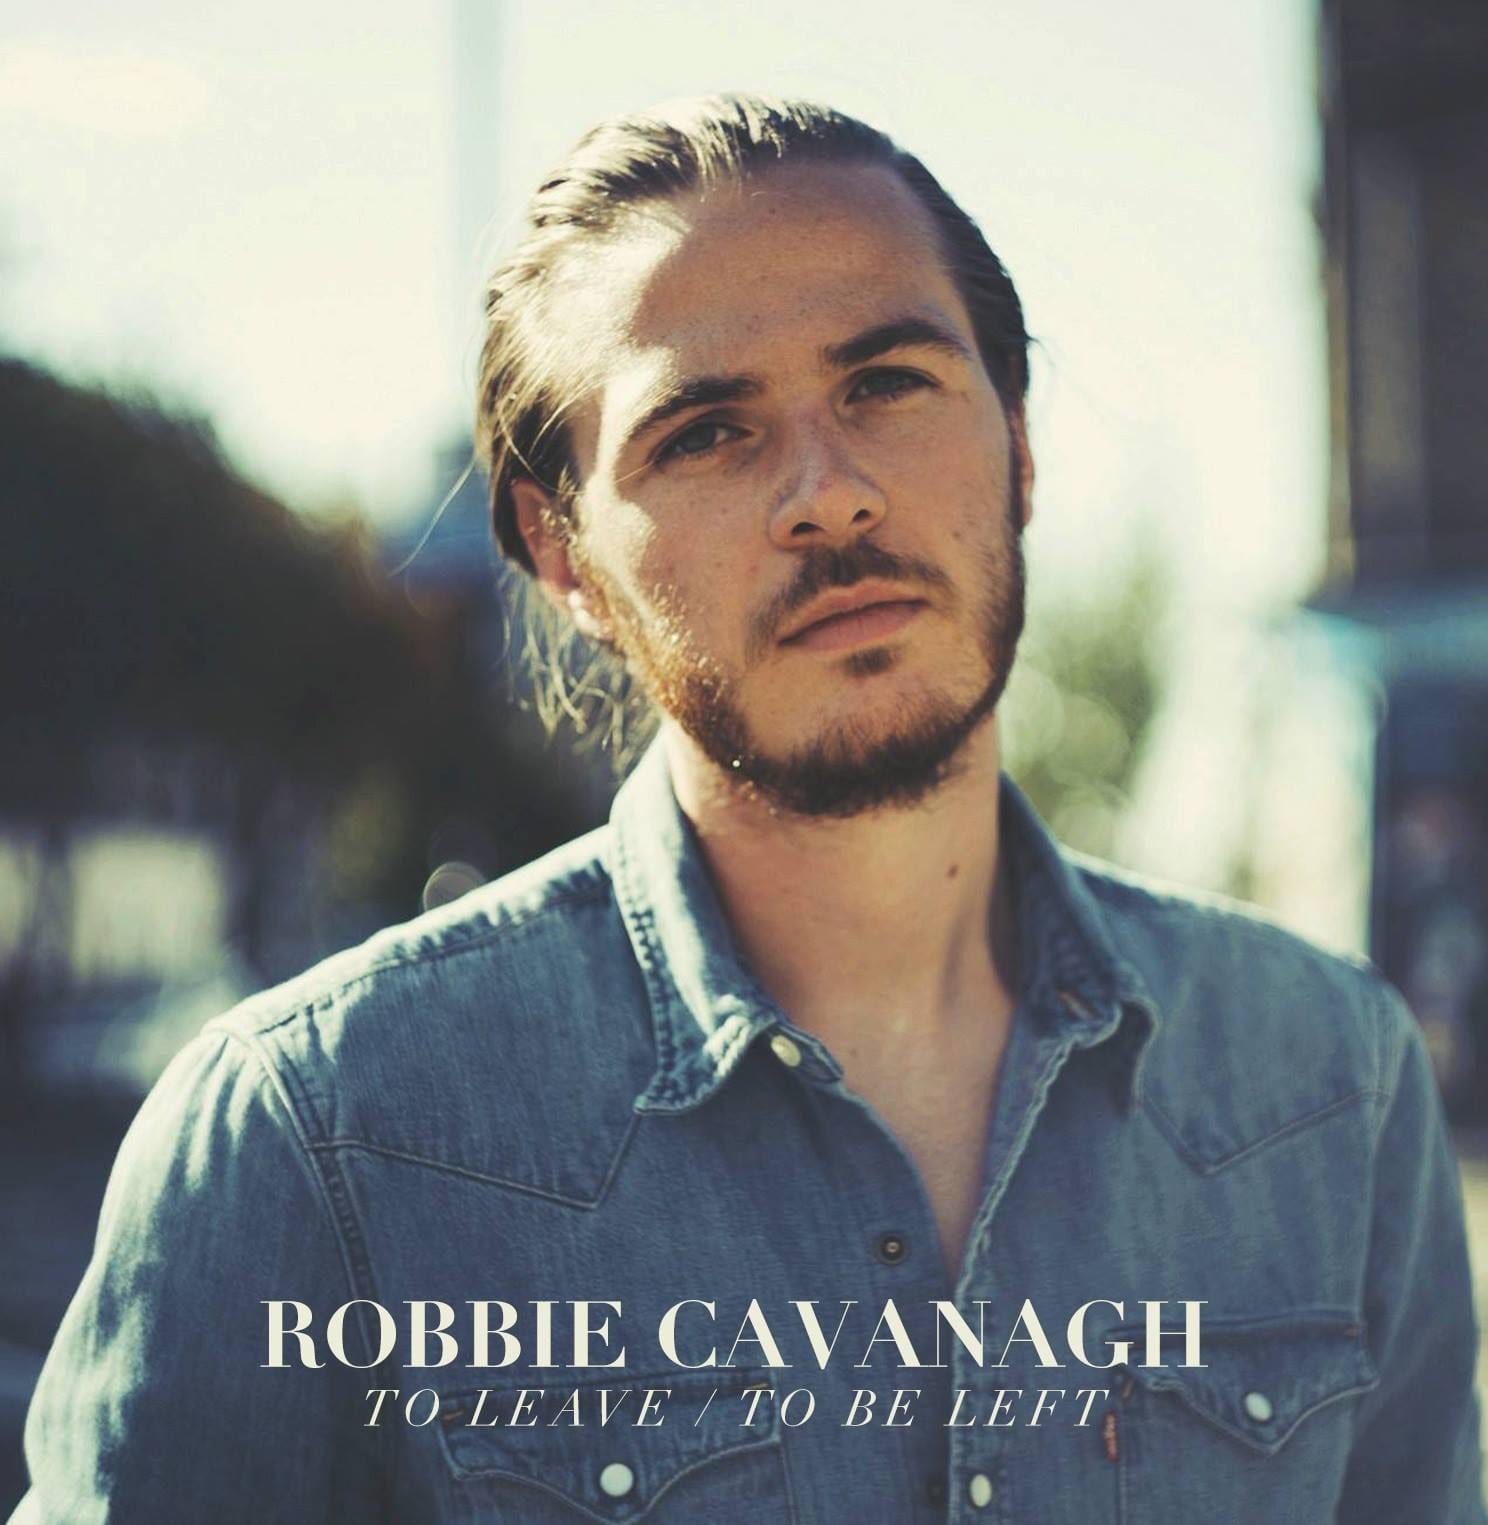 Album Review: To Leave / To Be Left // Robbie Cavanagh